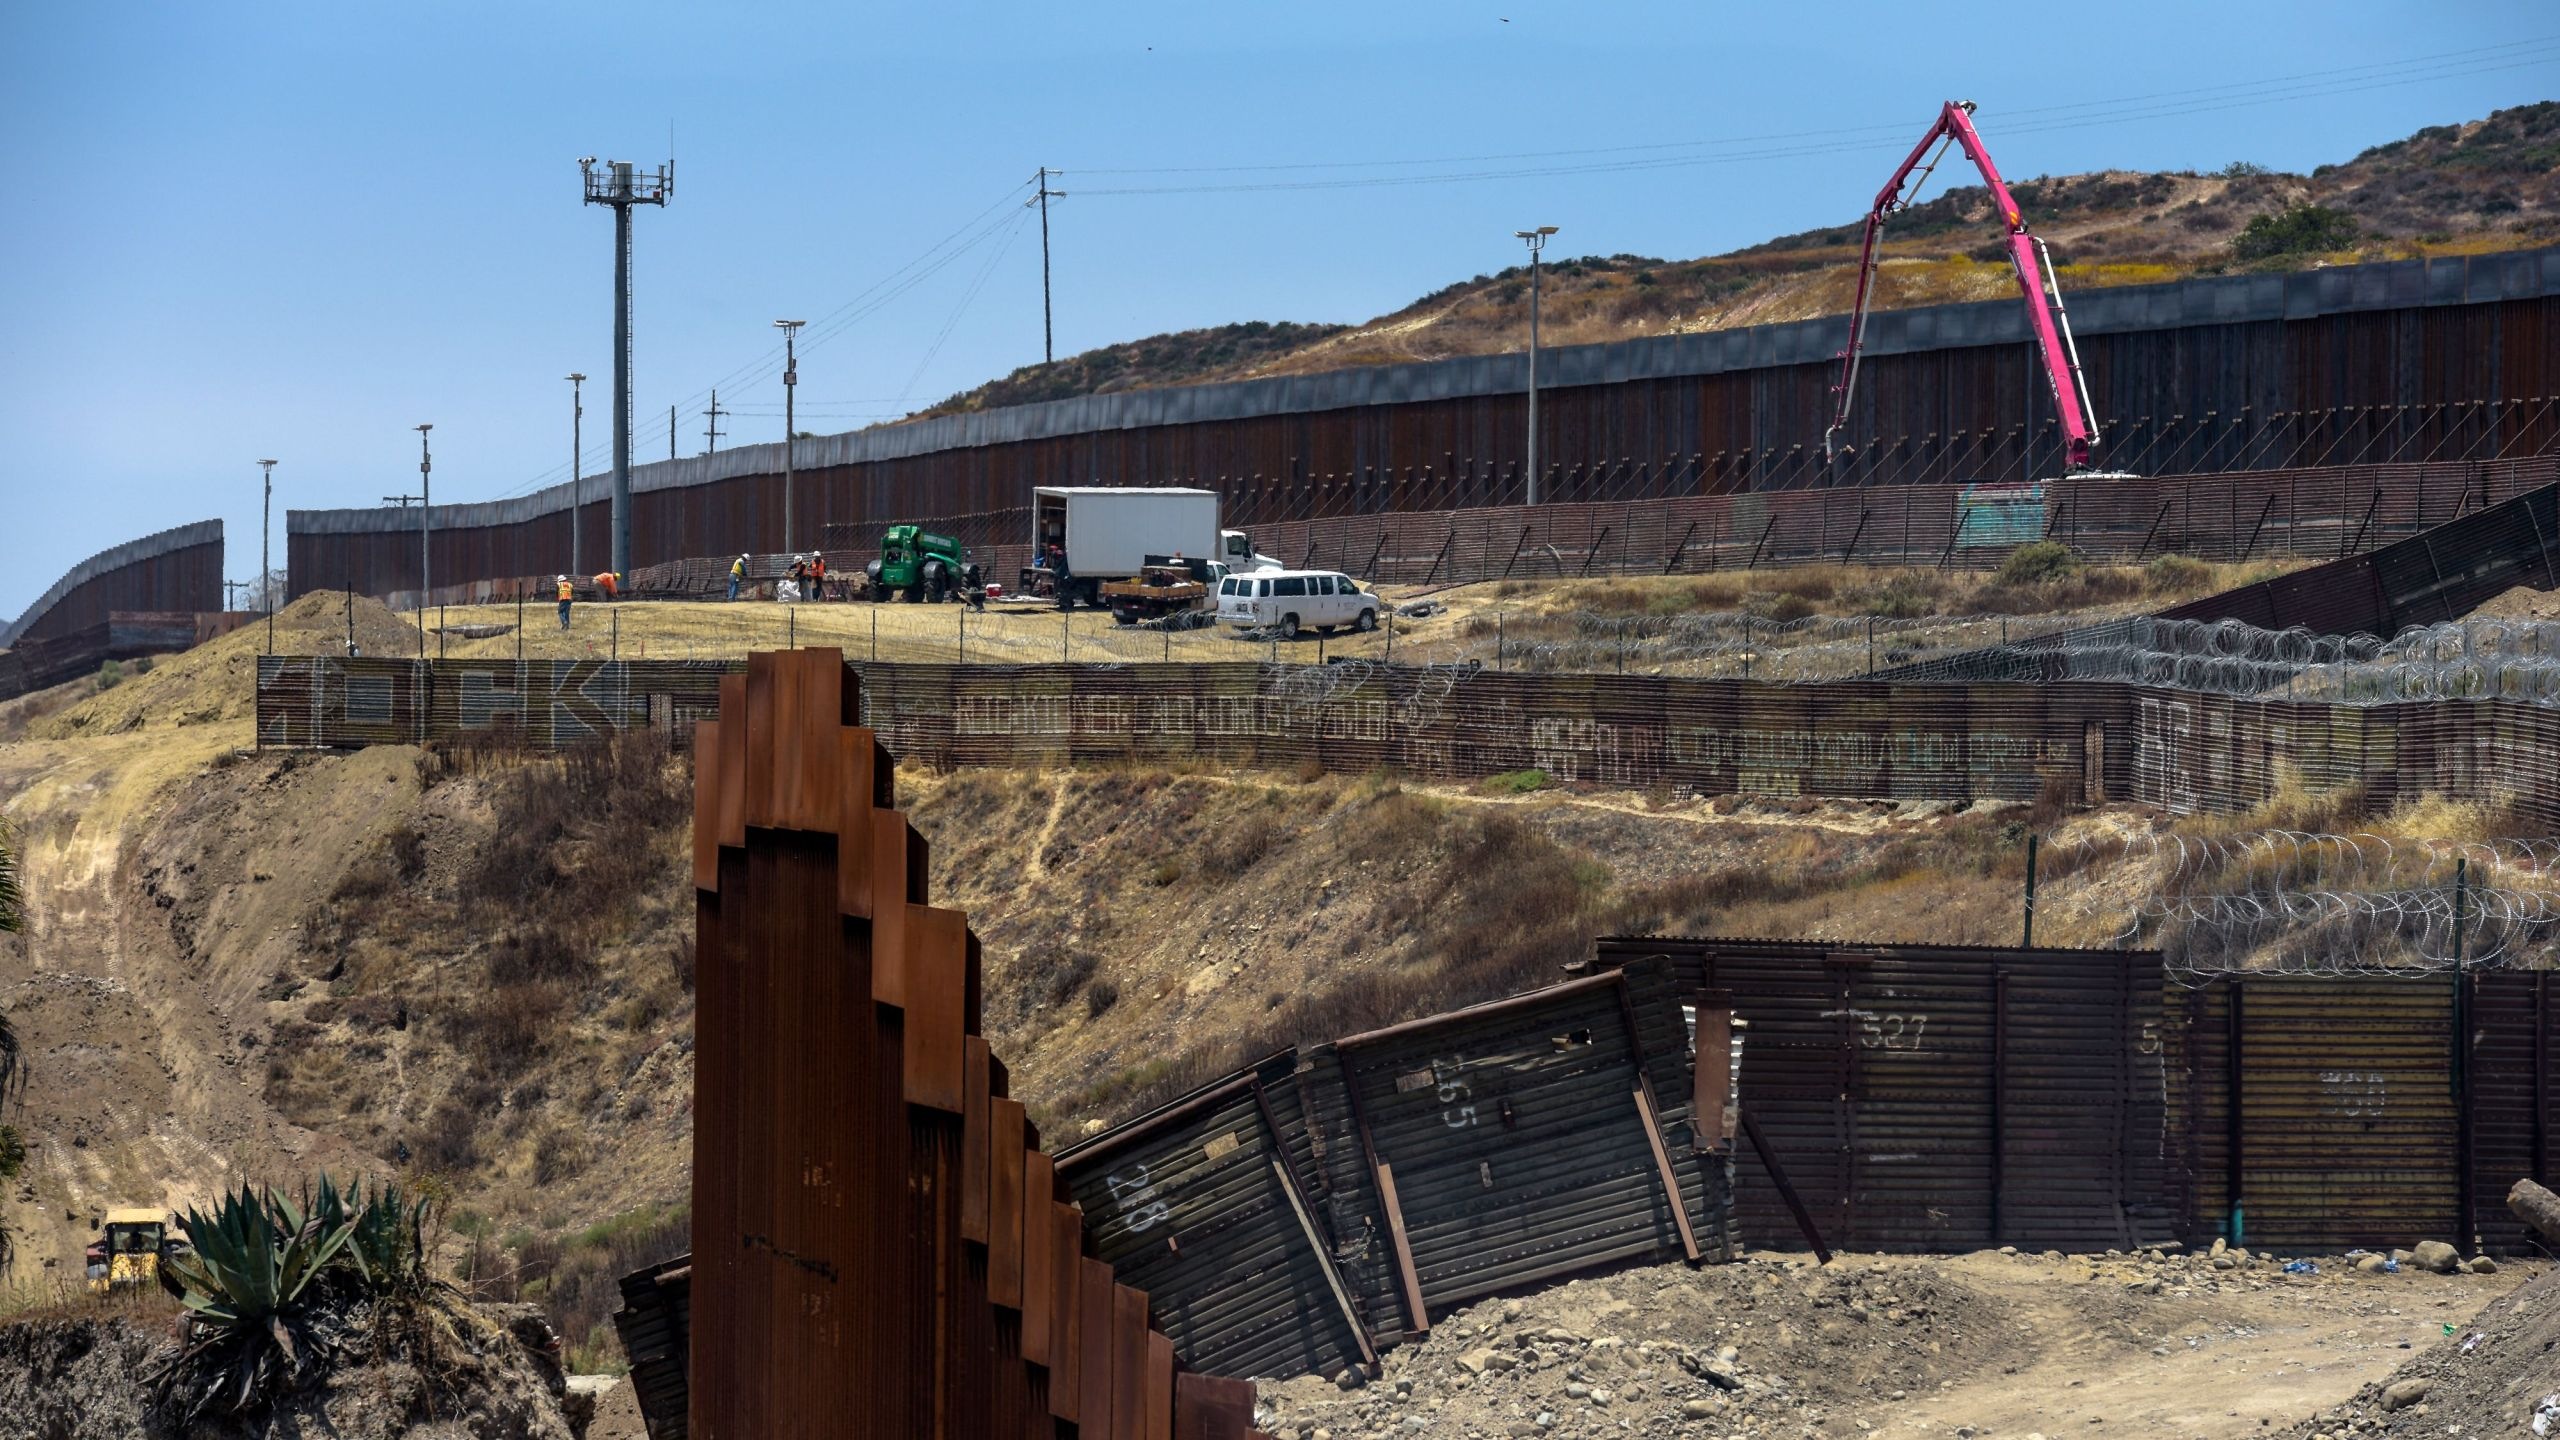 Construction is underway at a section of the Mexico-U.S. border wall in Tijuana on June 18, 2019. (Credit: Agustin Paullier / AFP / Getty Images)